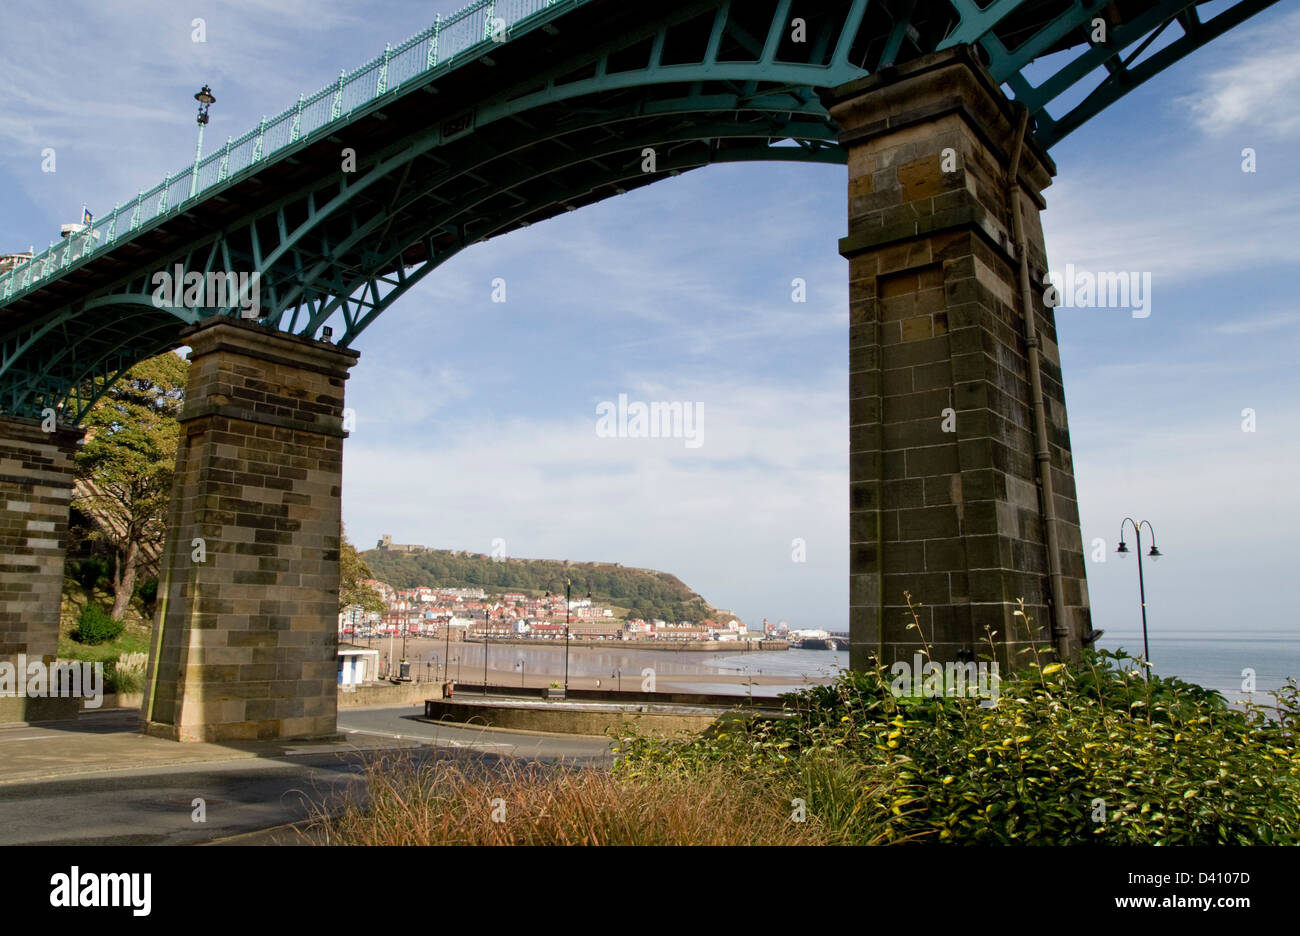 The coastal seaside resort of Scarborough framed by the Spa Bridge - Stock Image